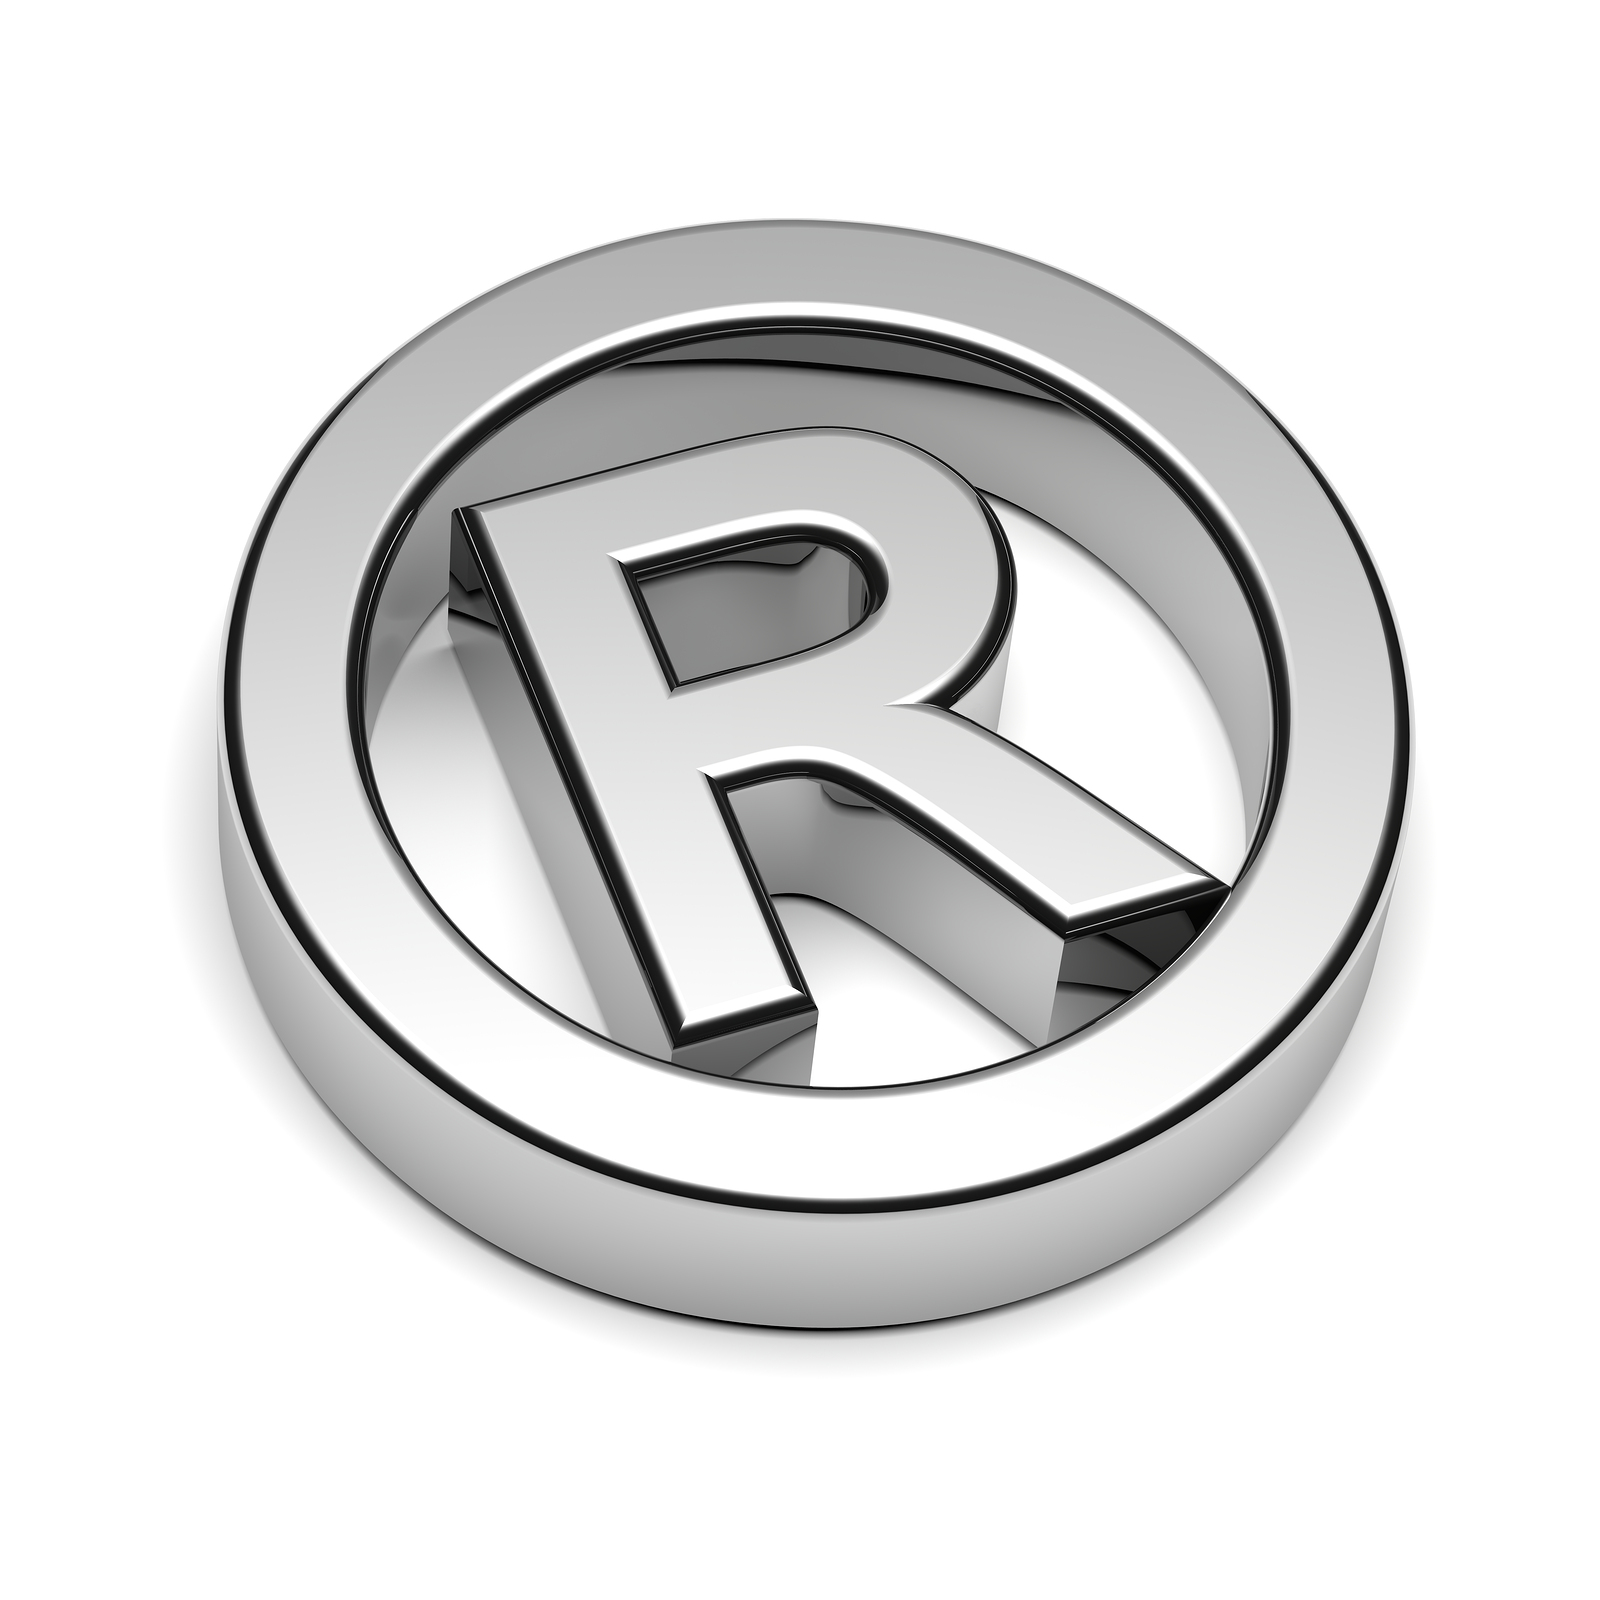 Foreign Company Should Know How to Register a Hong Kong Trademark?